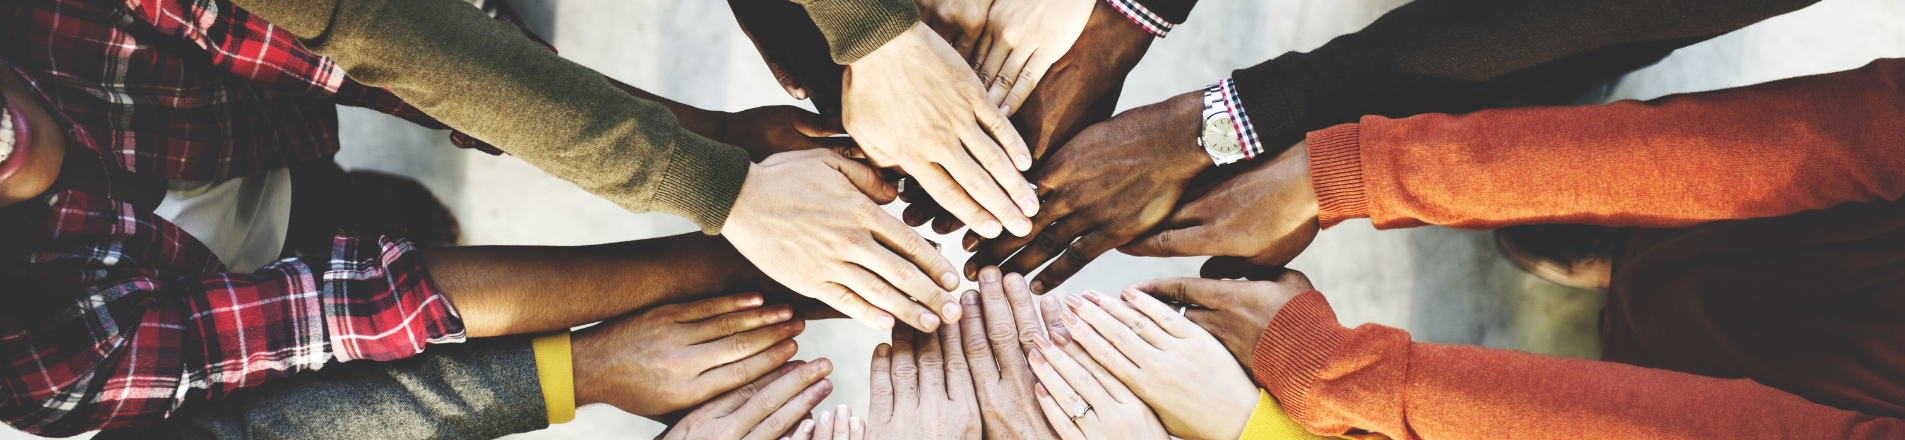 How do you make a multi-faith workplace work? Inclusive hands celebrating multi-faith